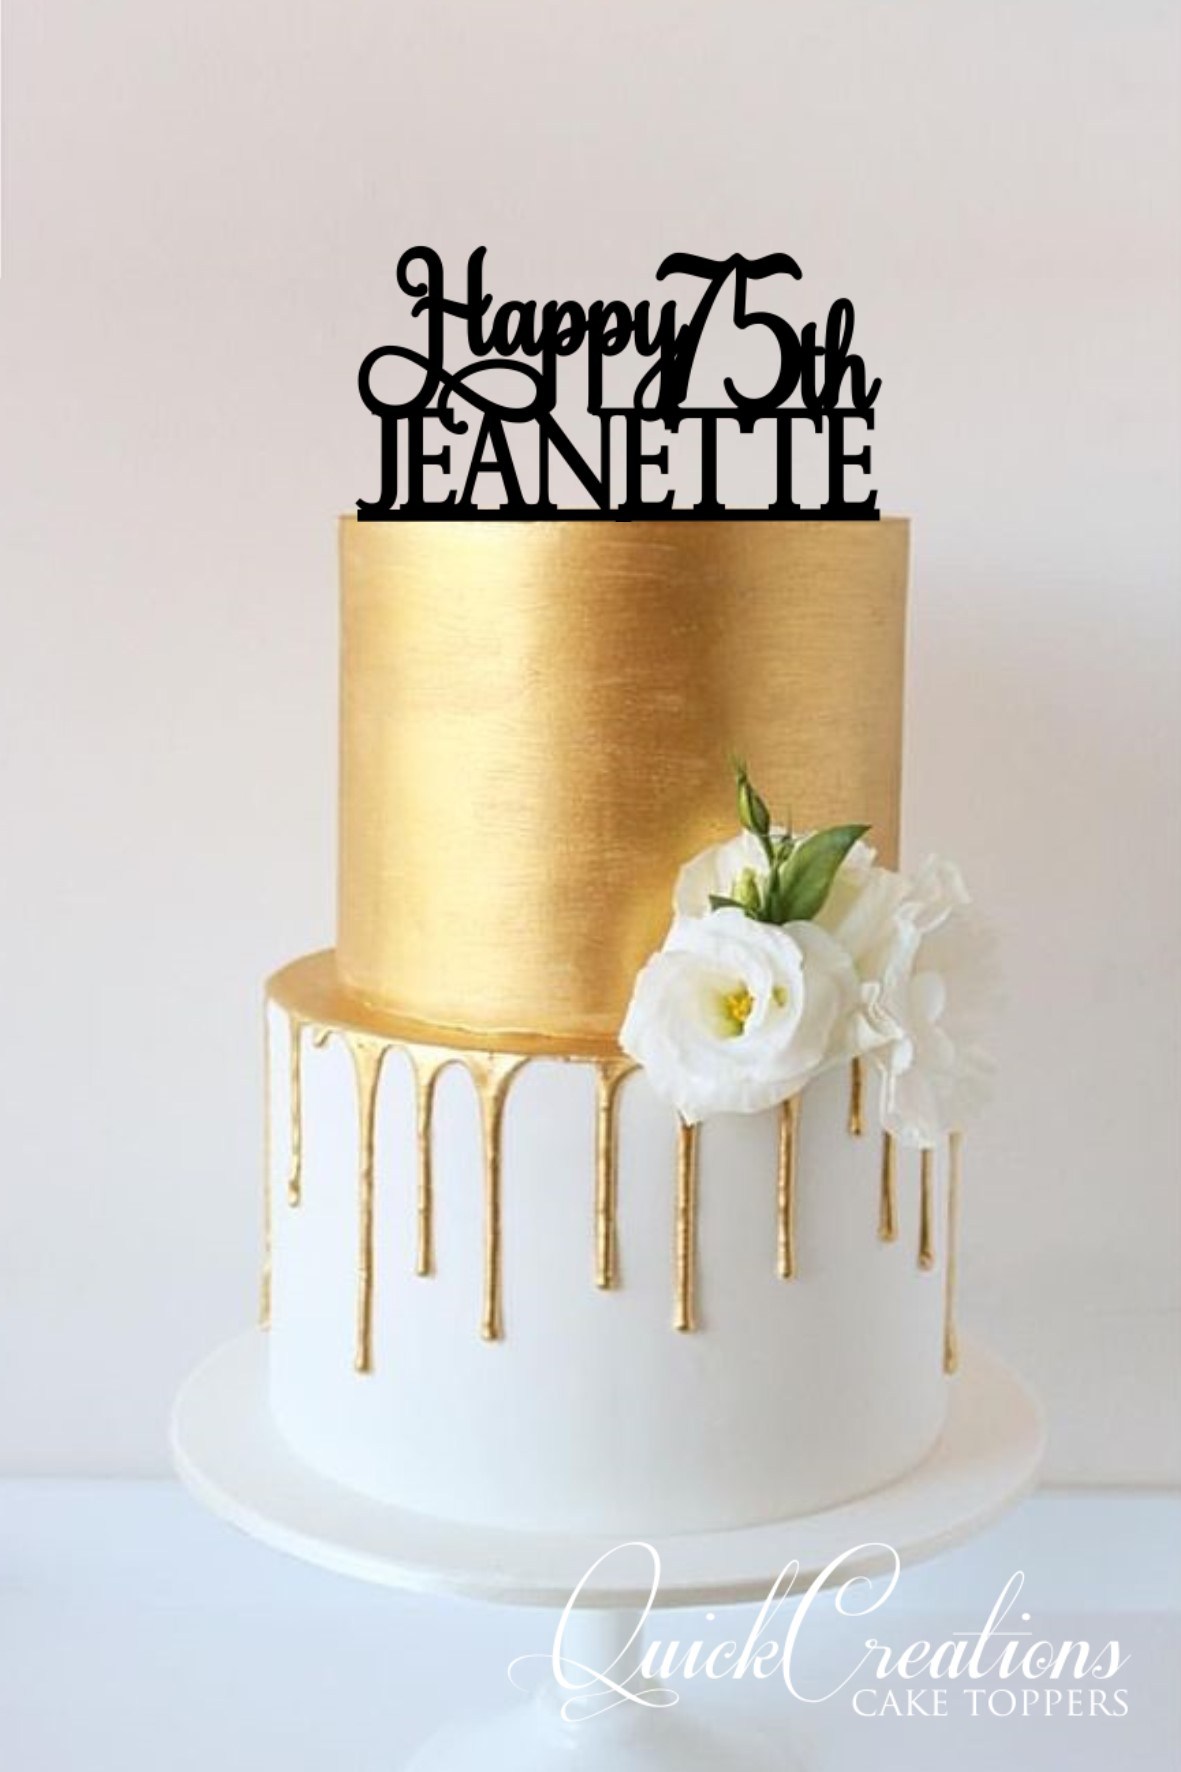 Quick Creations Cake Topper Happy 75th Jeanette